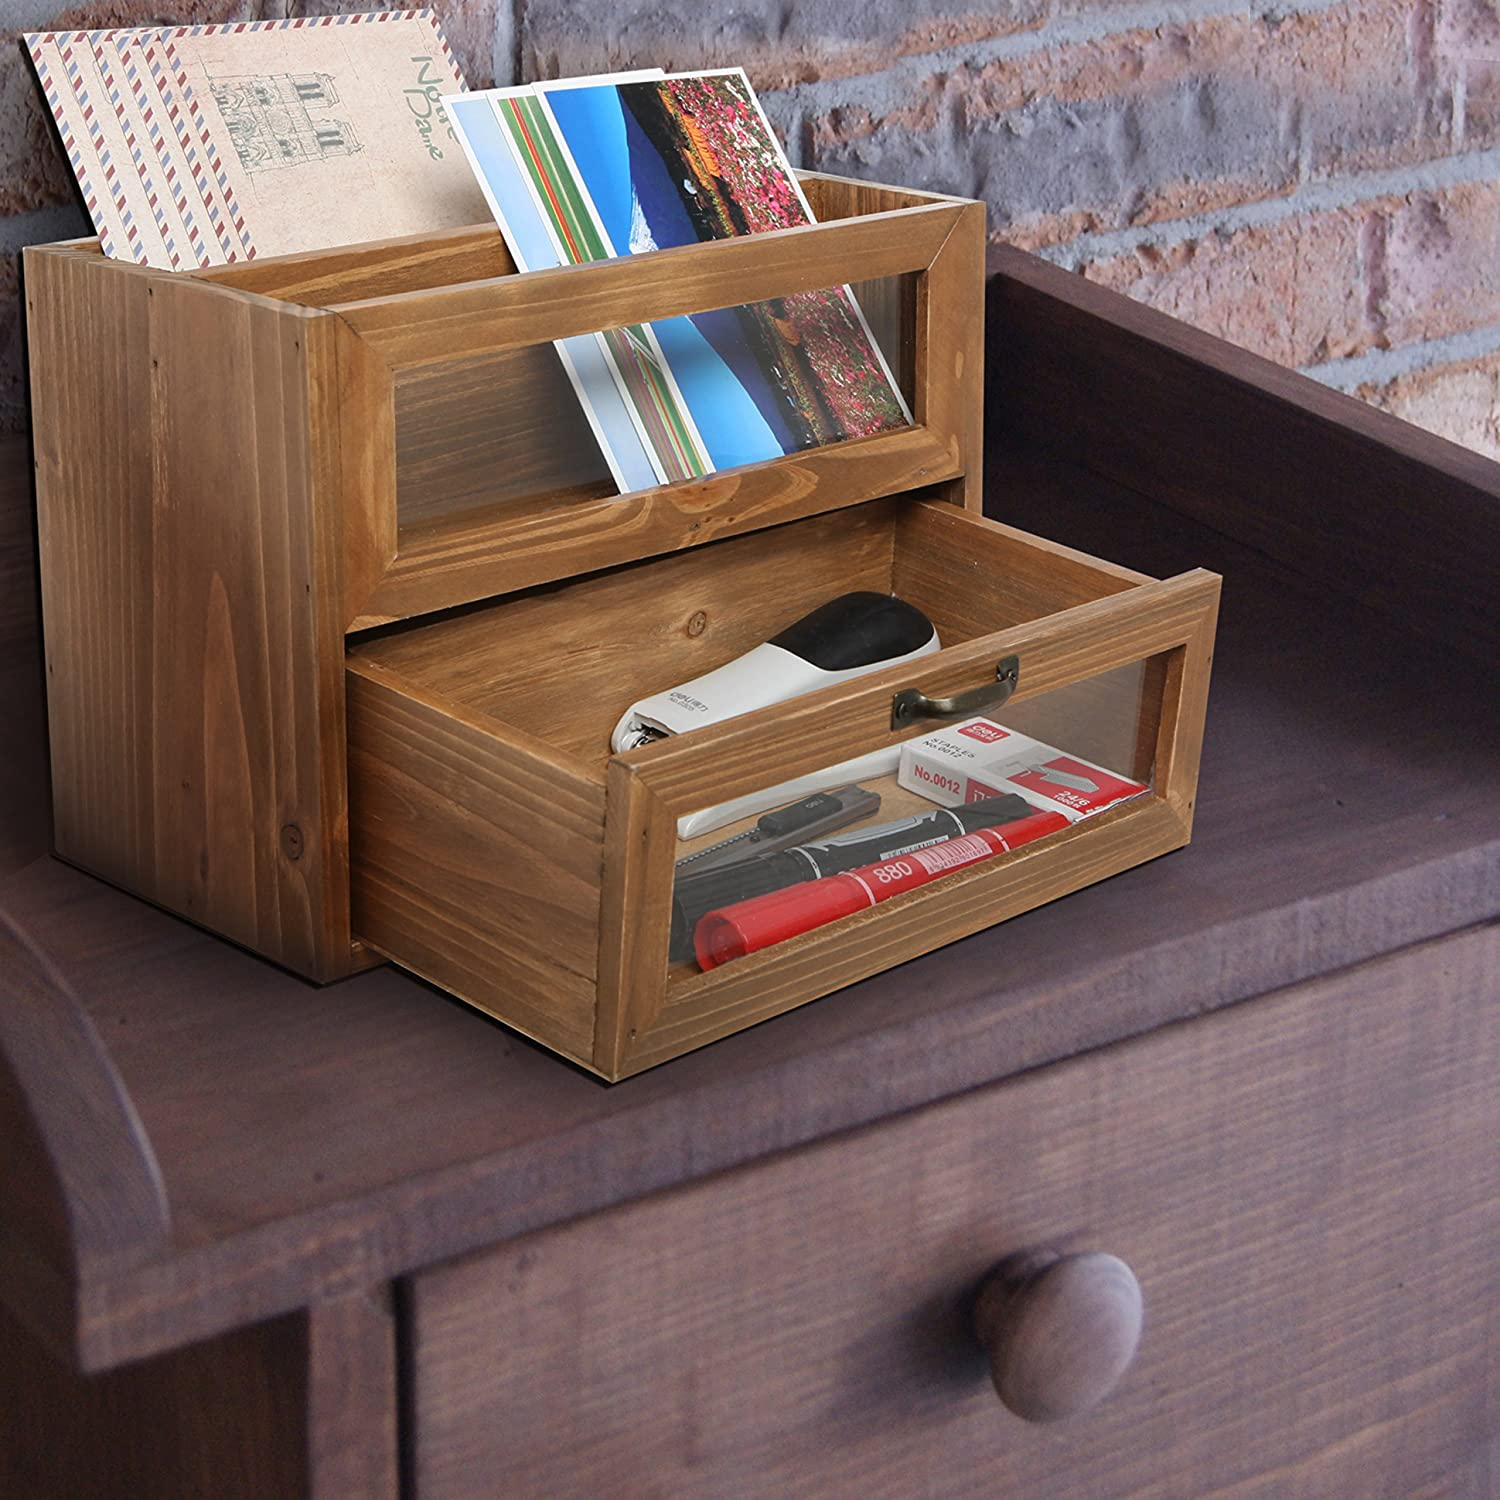 Amazon.com  Natural Unfinished Wood Mini Office Supply Storage Cabinet / File Letter Desktop Organizer - MyGift Home  Office Products & Amazon.com : Natural Unfinished Wood Mini Office Supply Storage ...